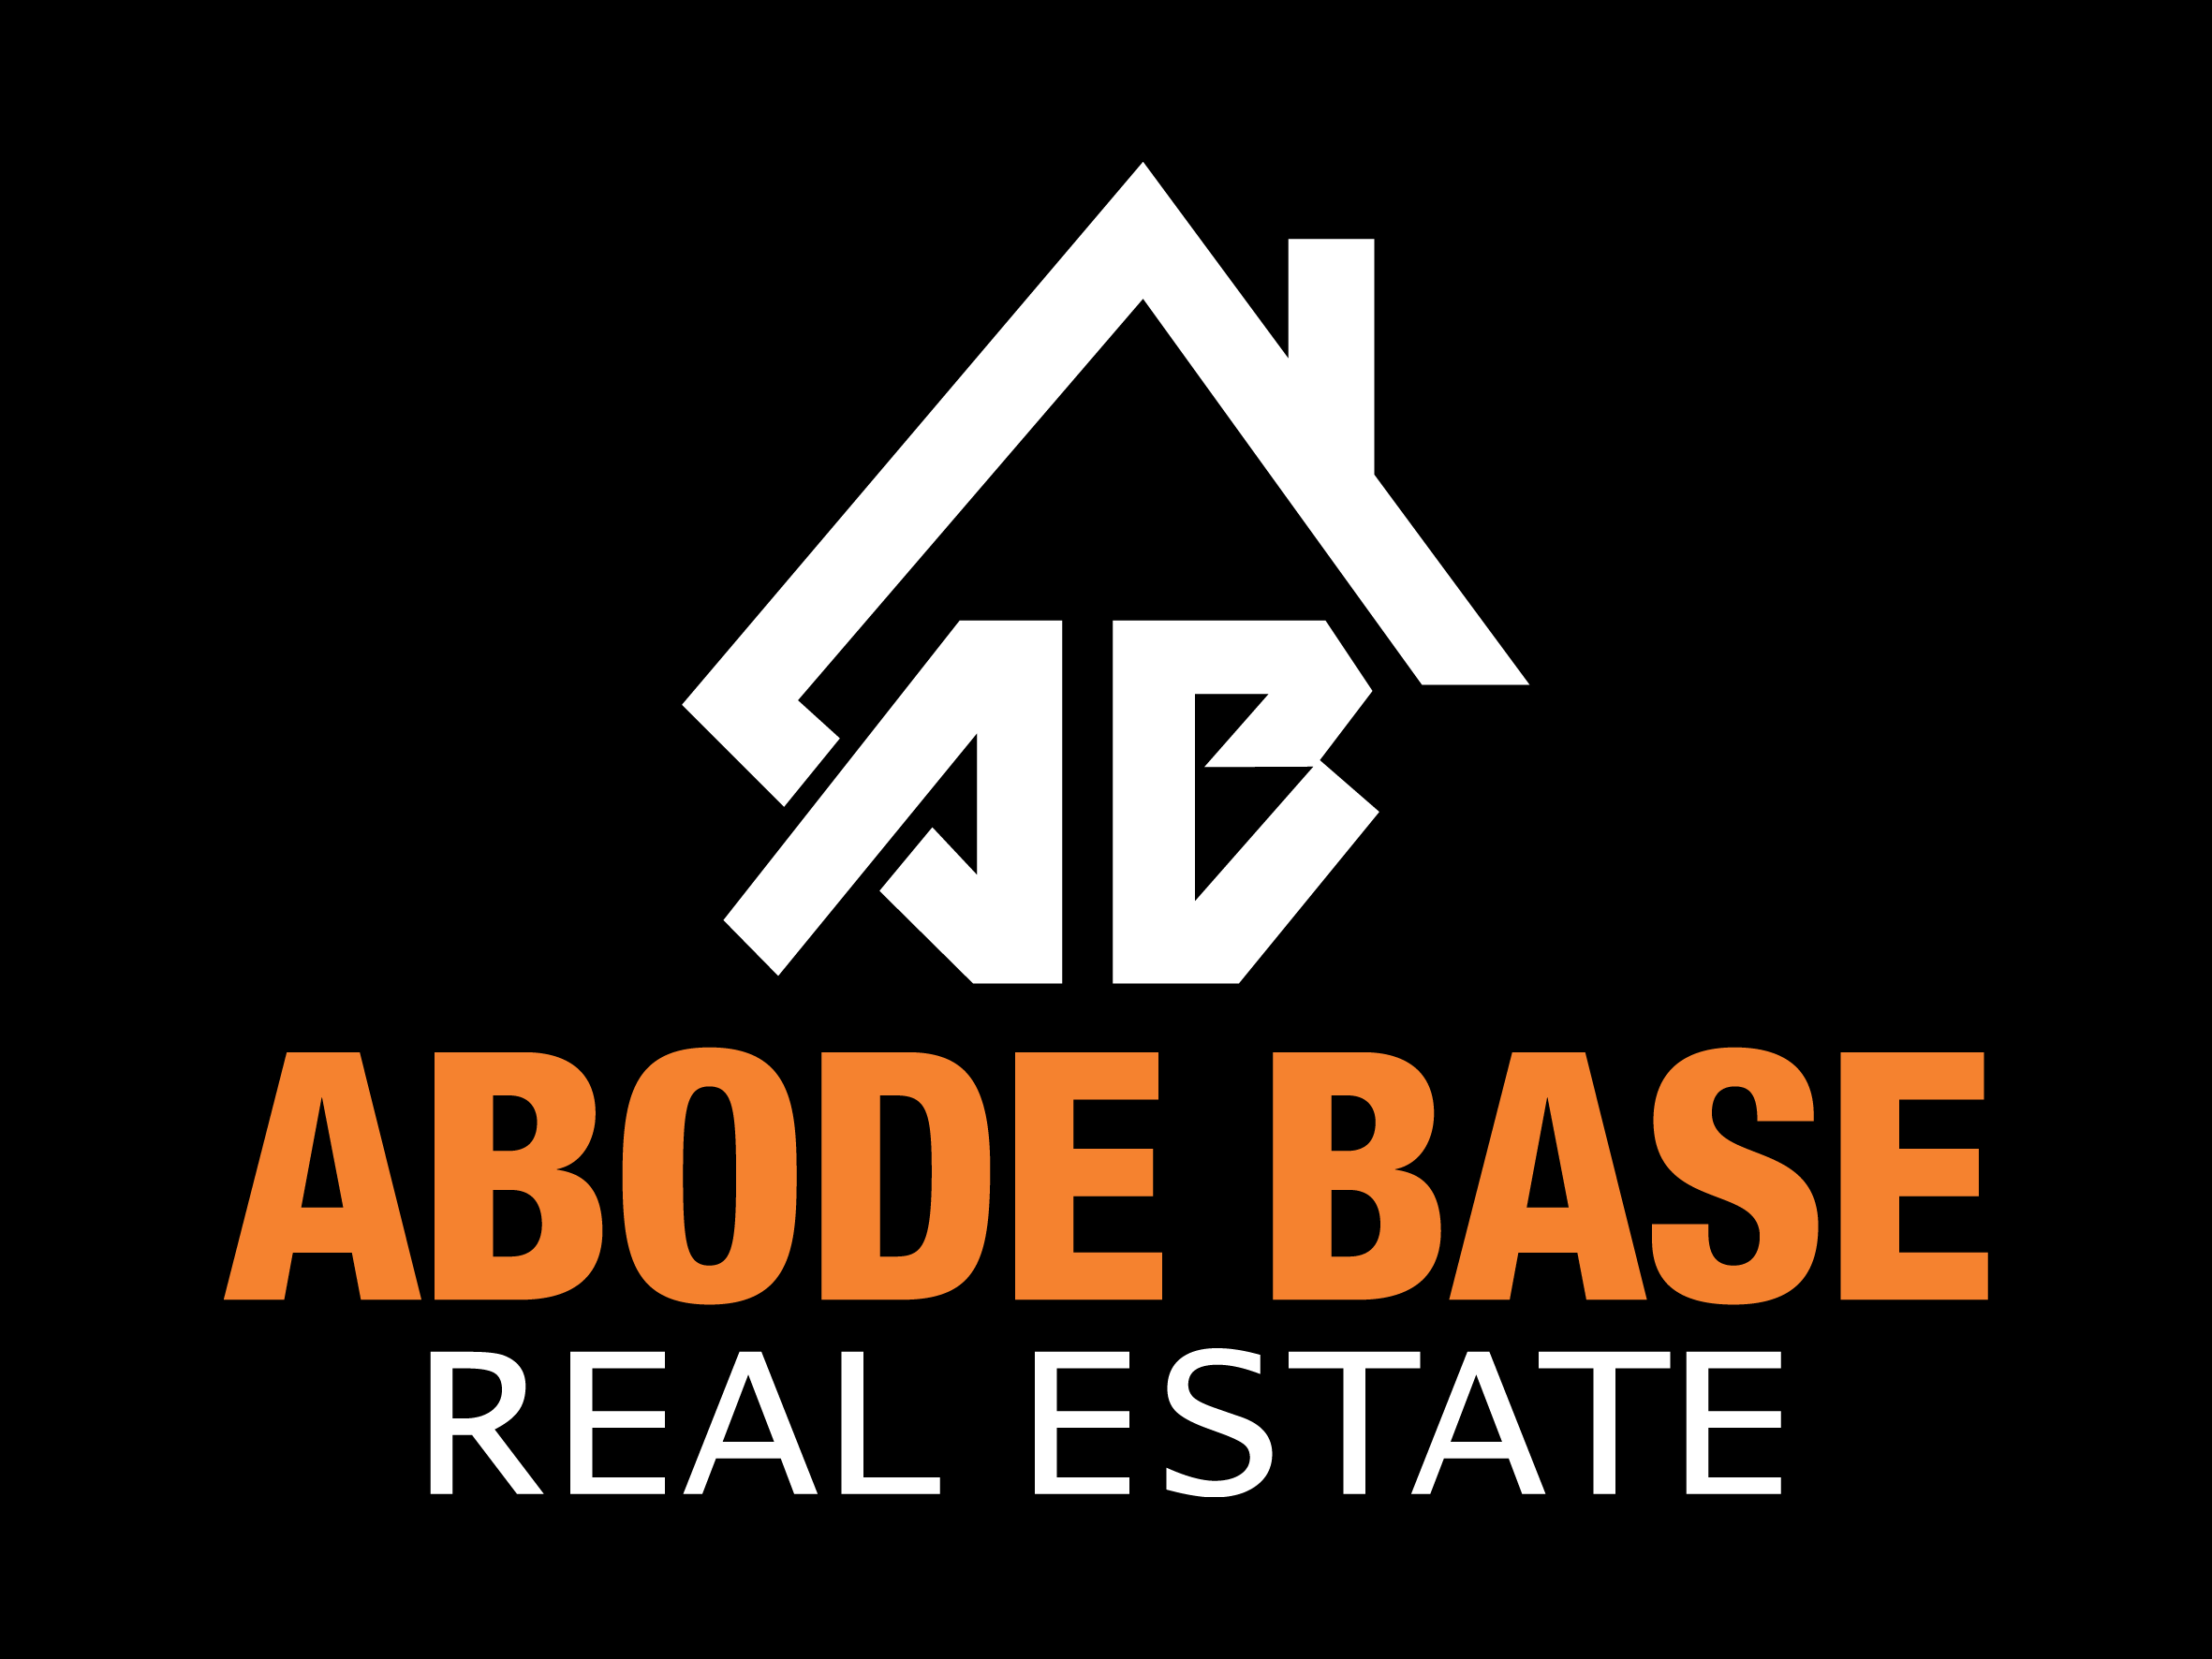 Abode Base Real Estate  logo